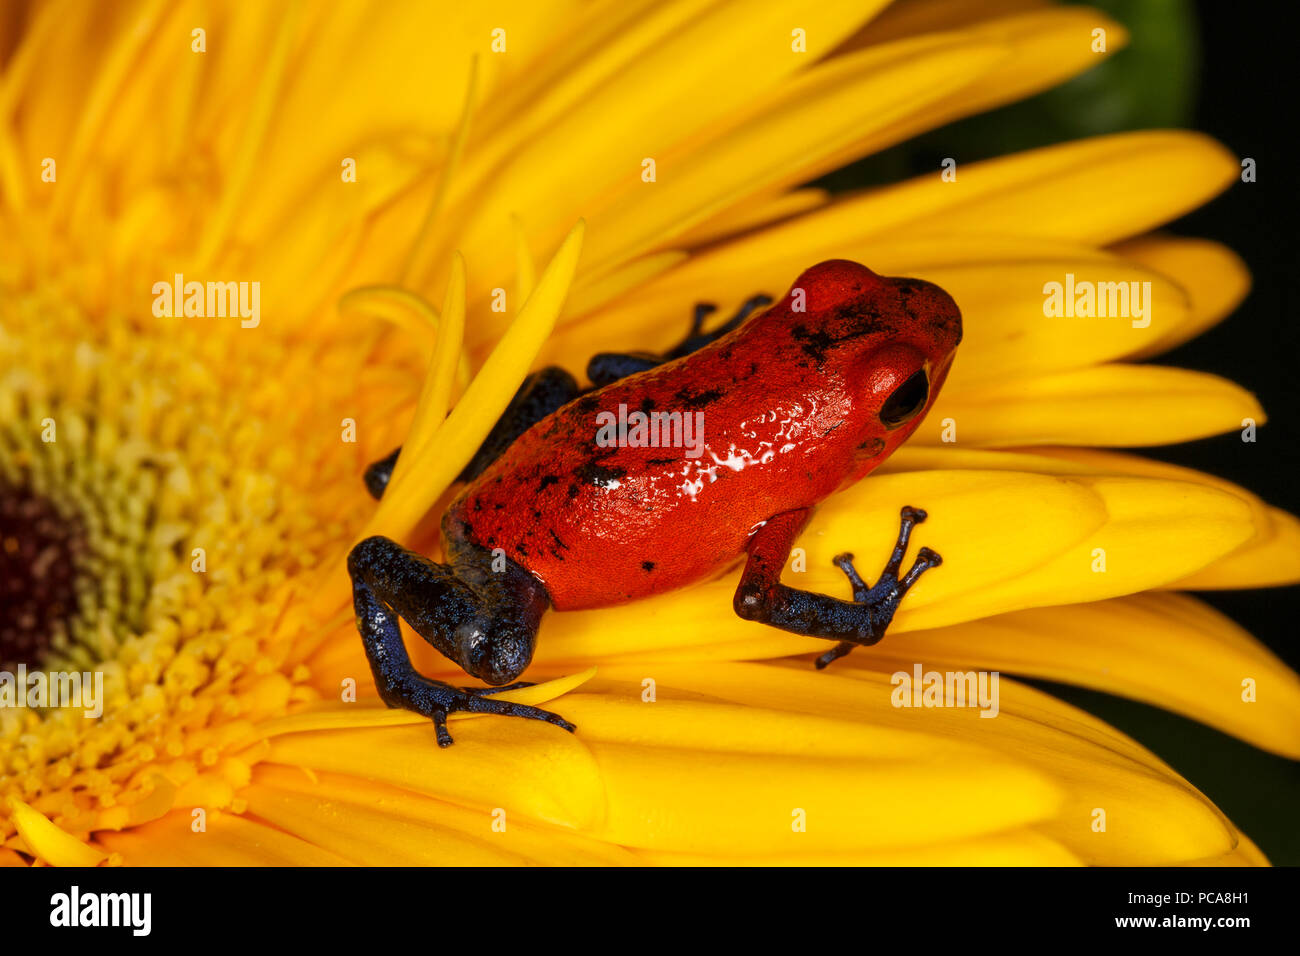 Nicaragua blue jean dart frog or Pumilio dart frog (Oophaga pumilio) - Stock Image